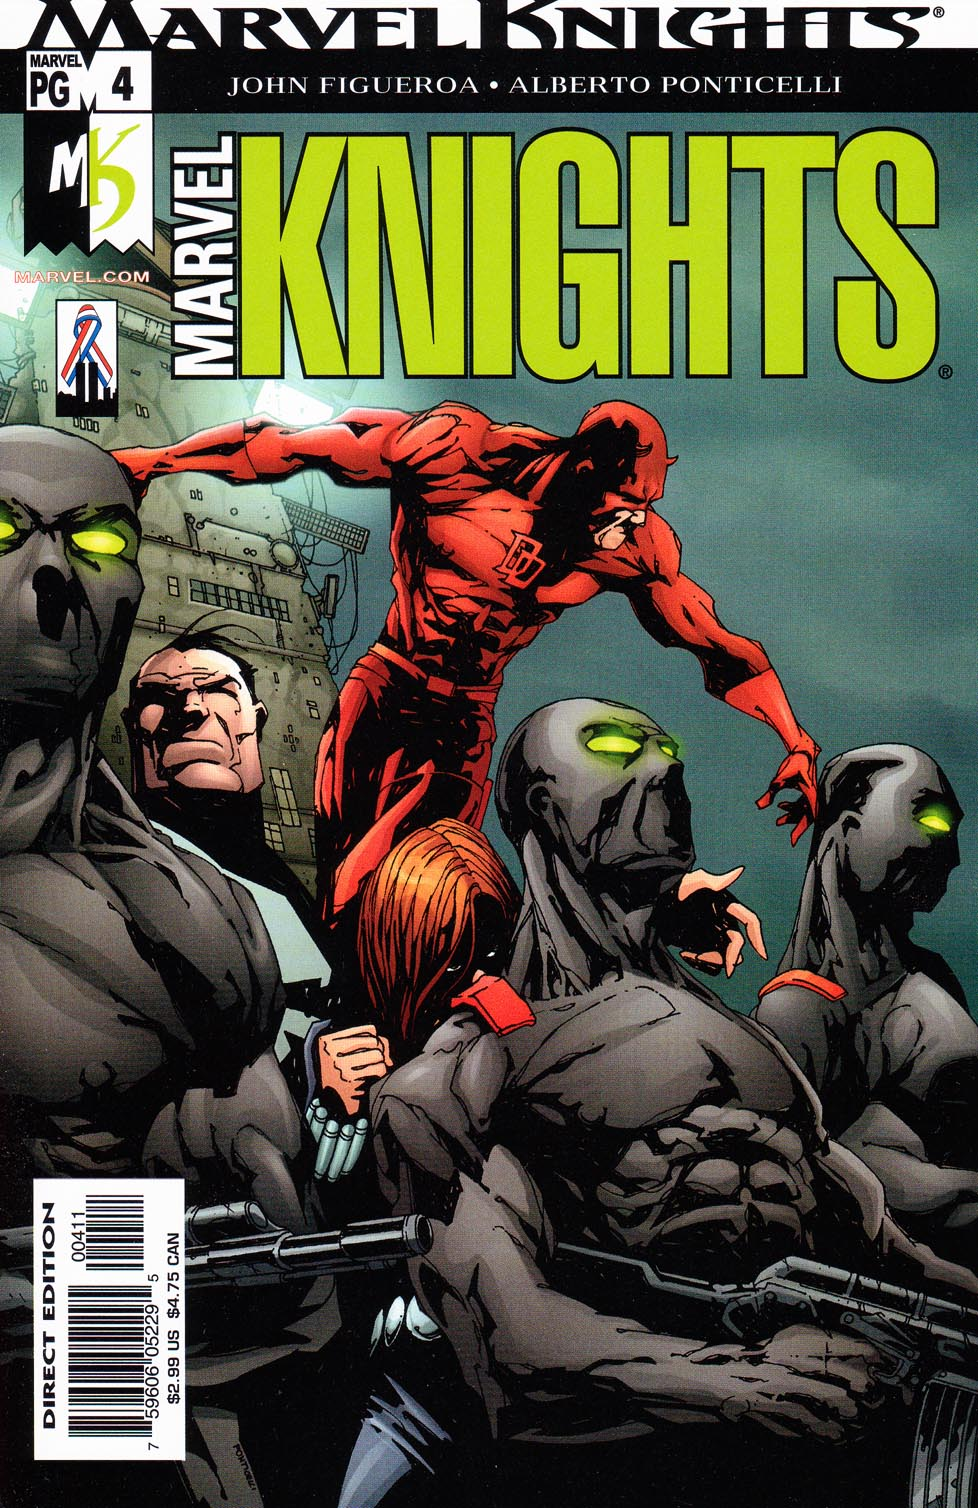 Marvel Knights (2002) 4 Page 1